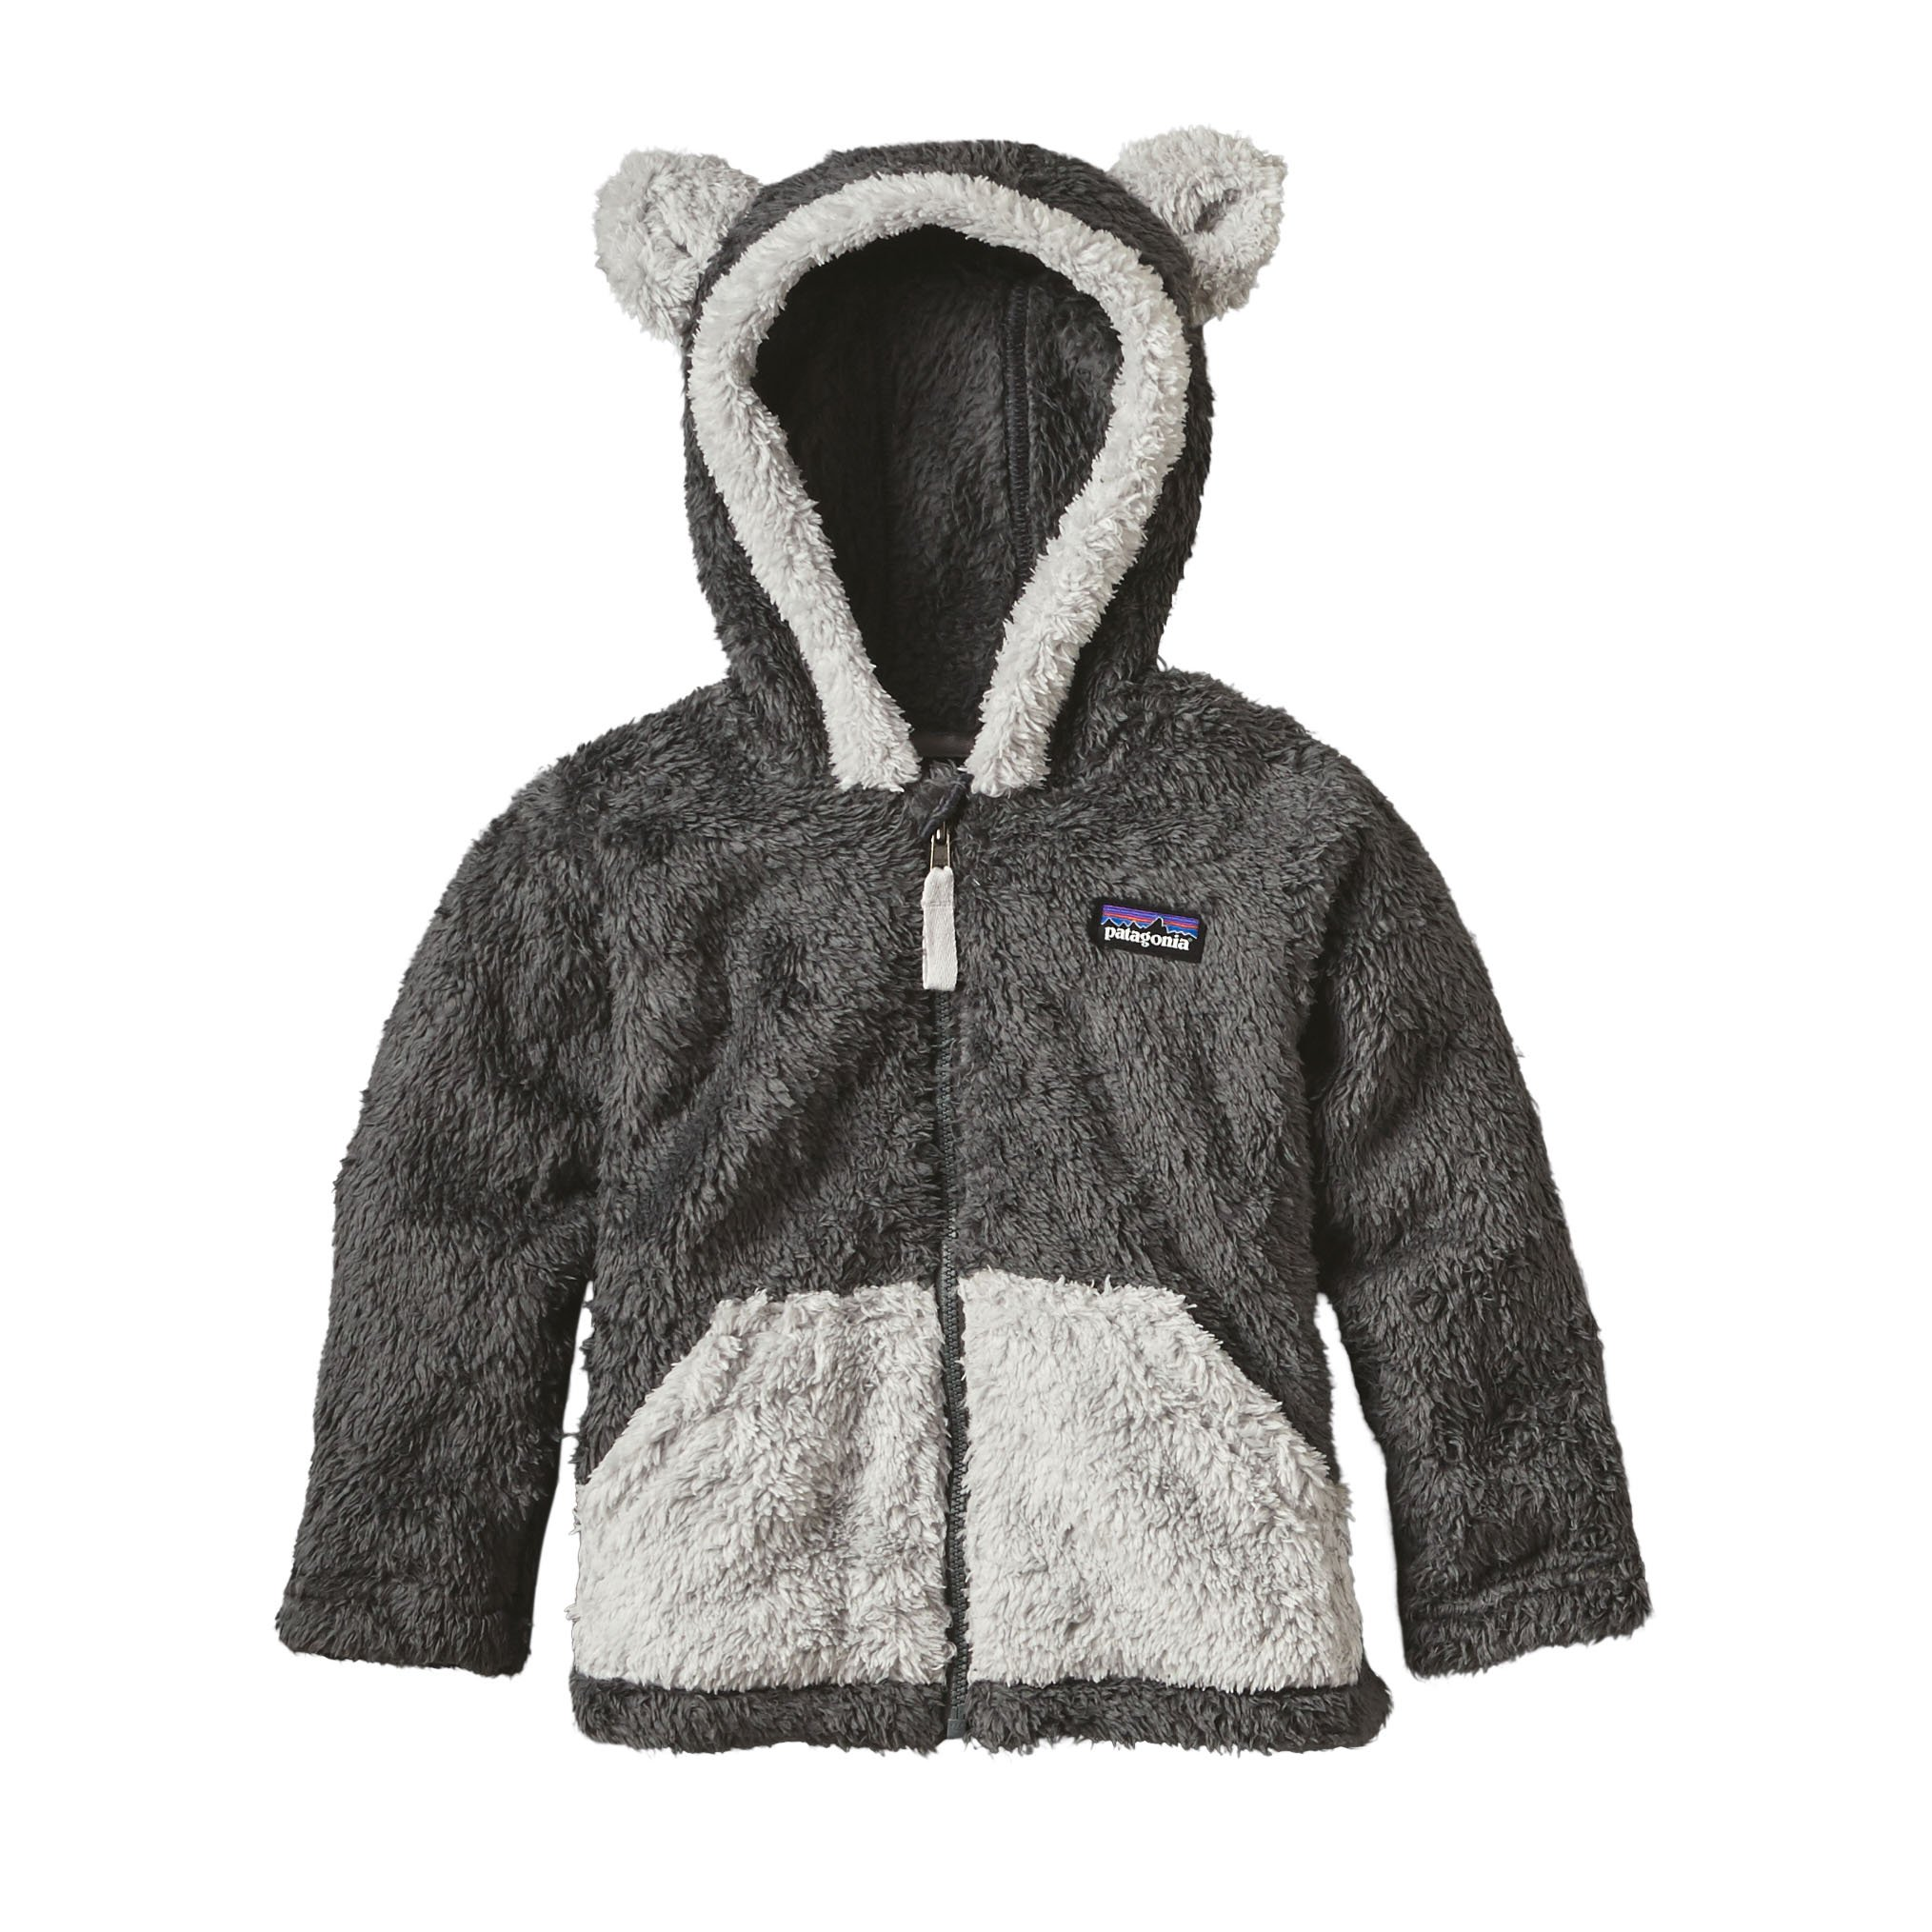 Patagonia Toddler Furry Friends Hoodie (Forge Grey, 3T)